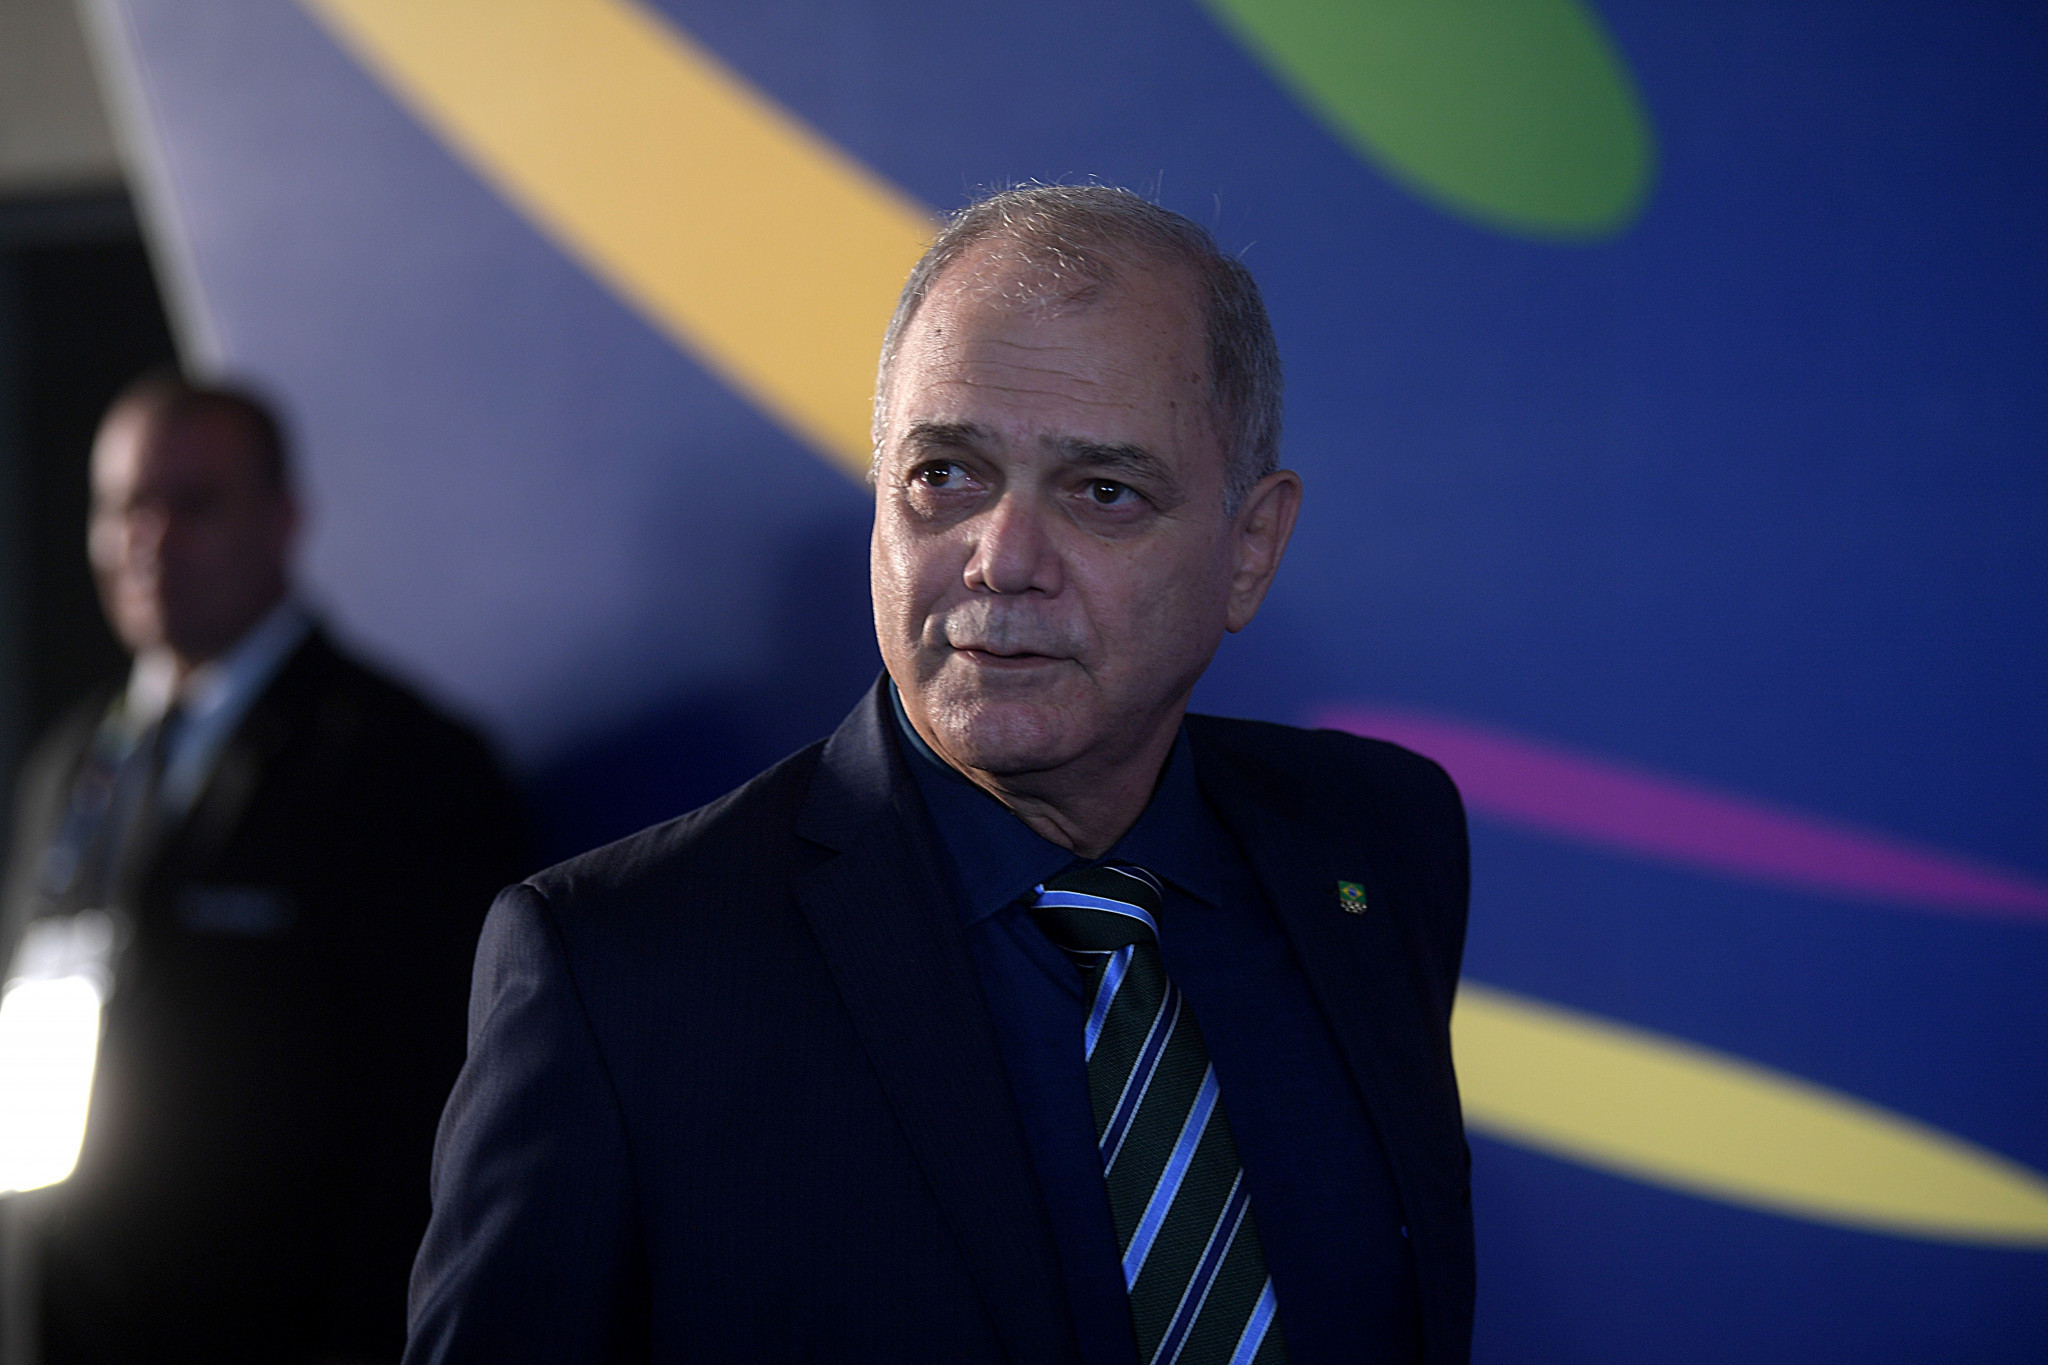 Brazilian Olympic Committee President Paulo Wanderley Teixeira opened the event ©Getty Images